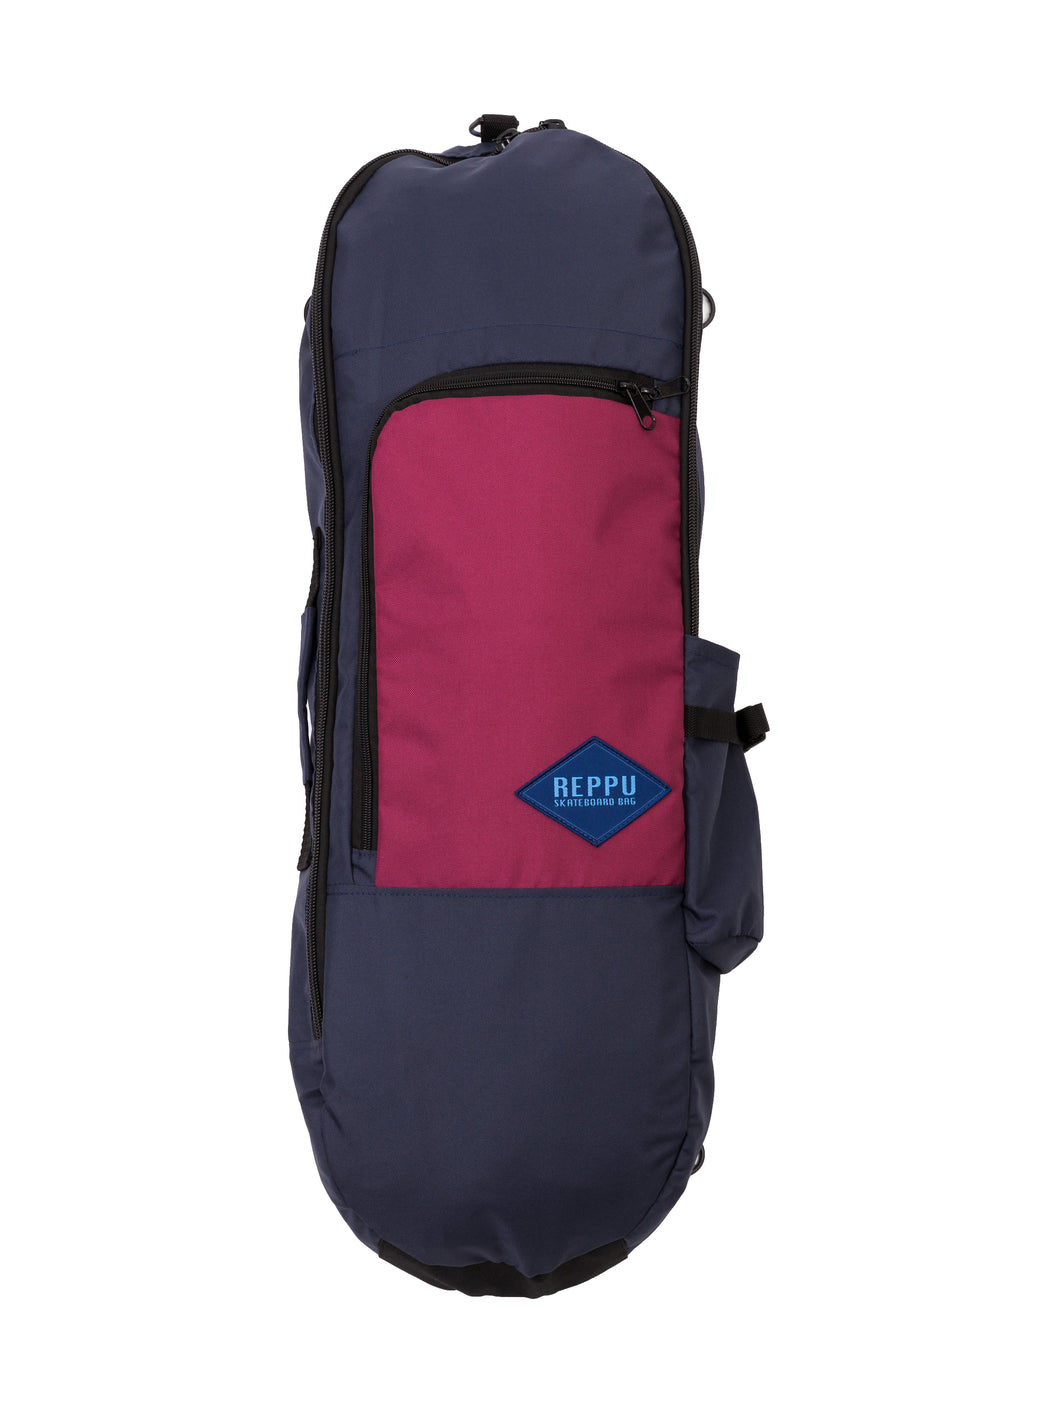 Reppu Skateboard Bag Navy/Bordo